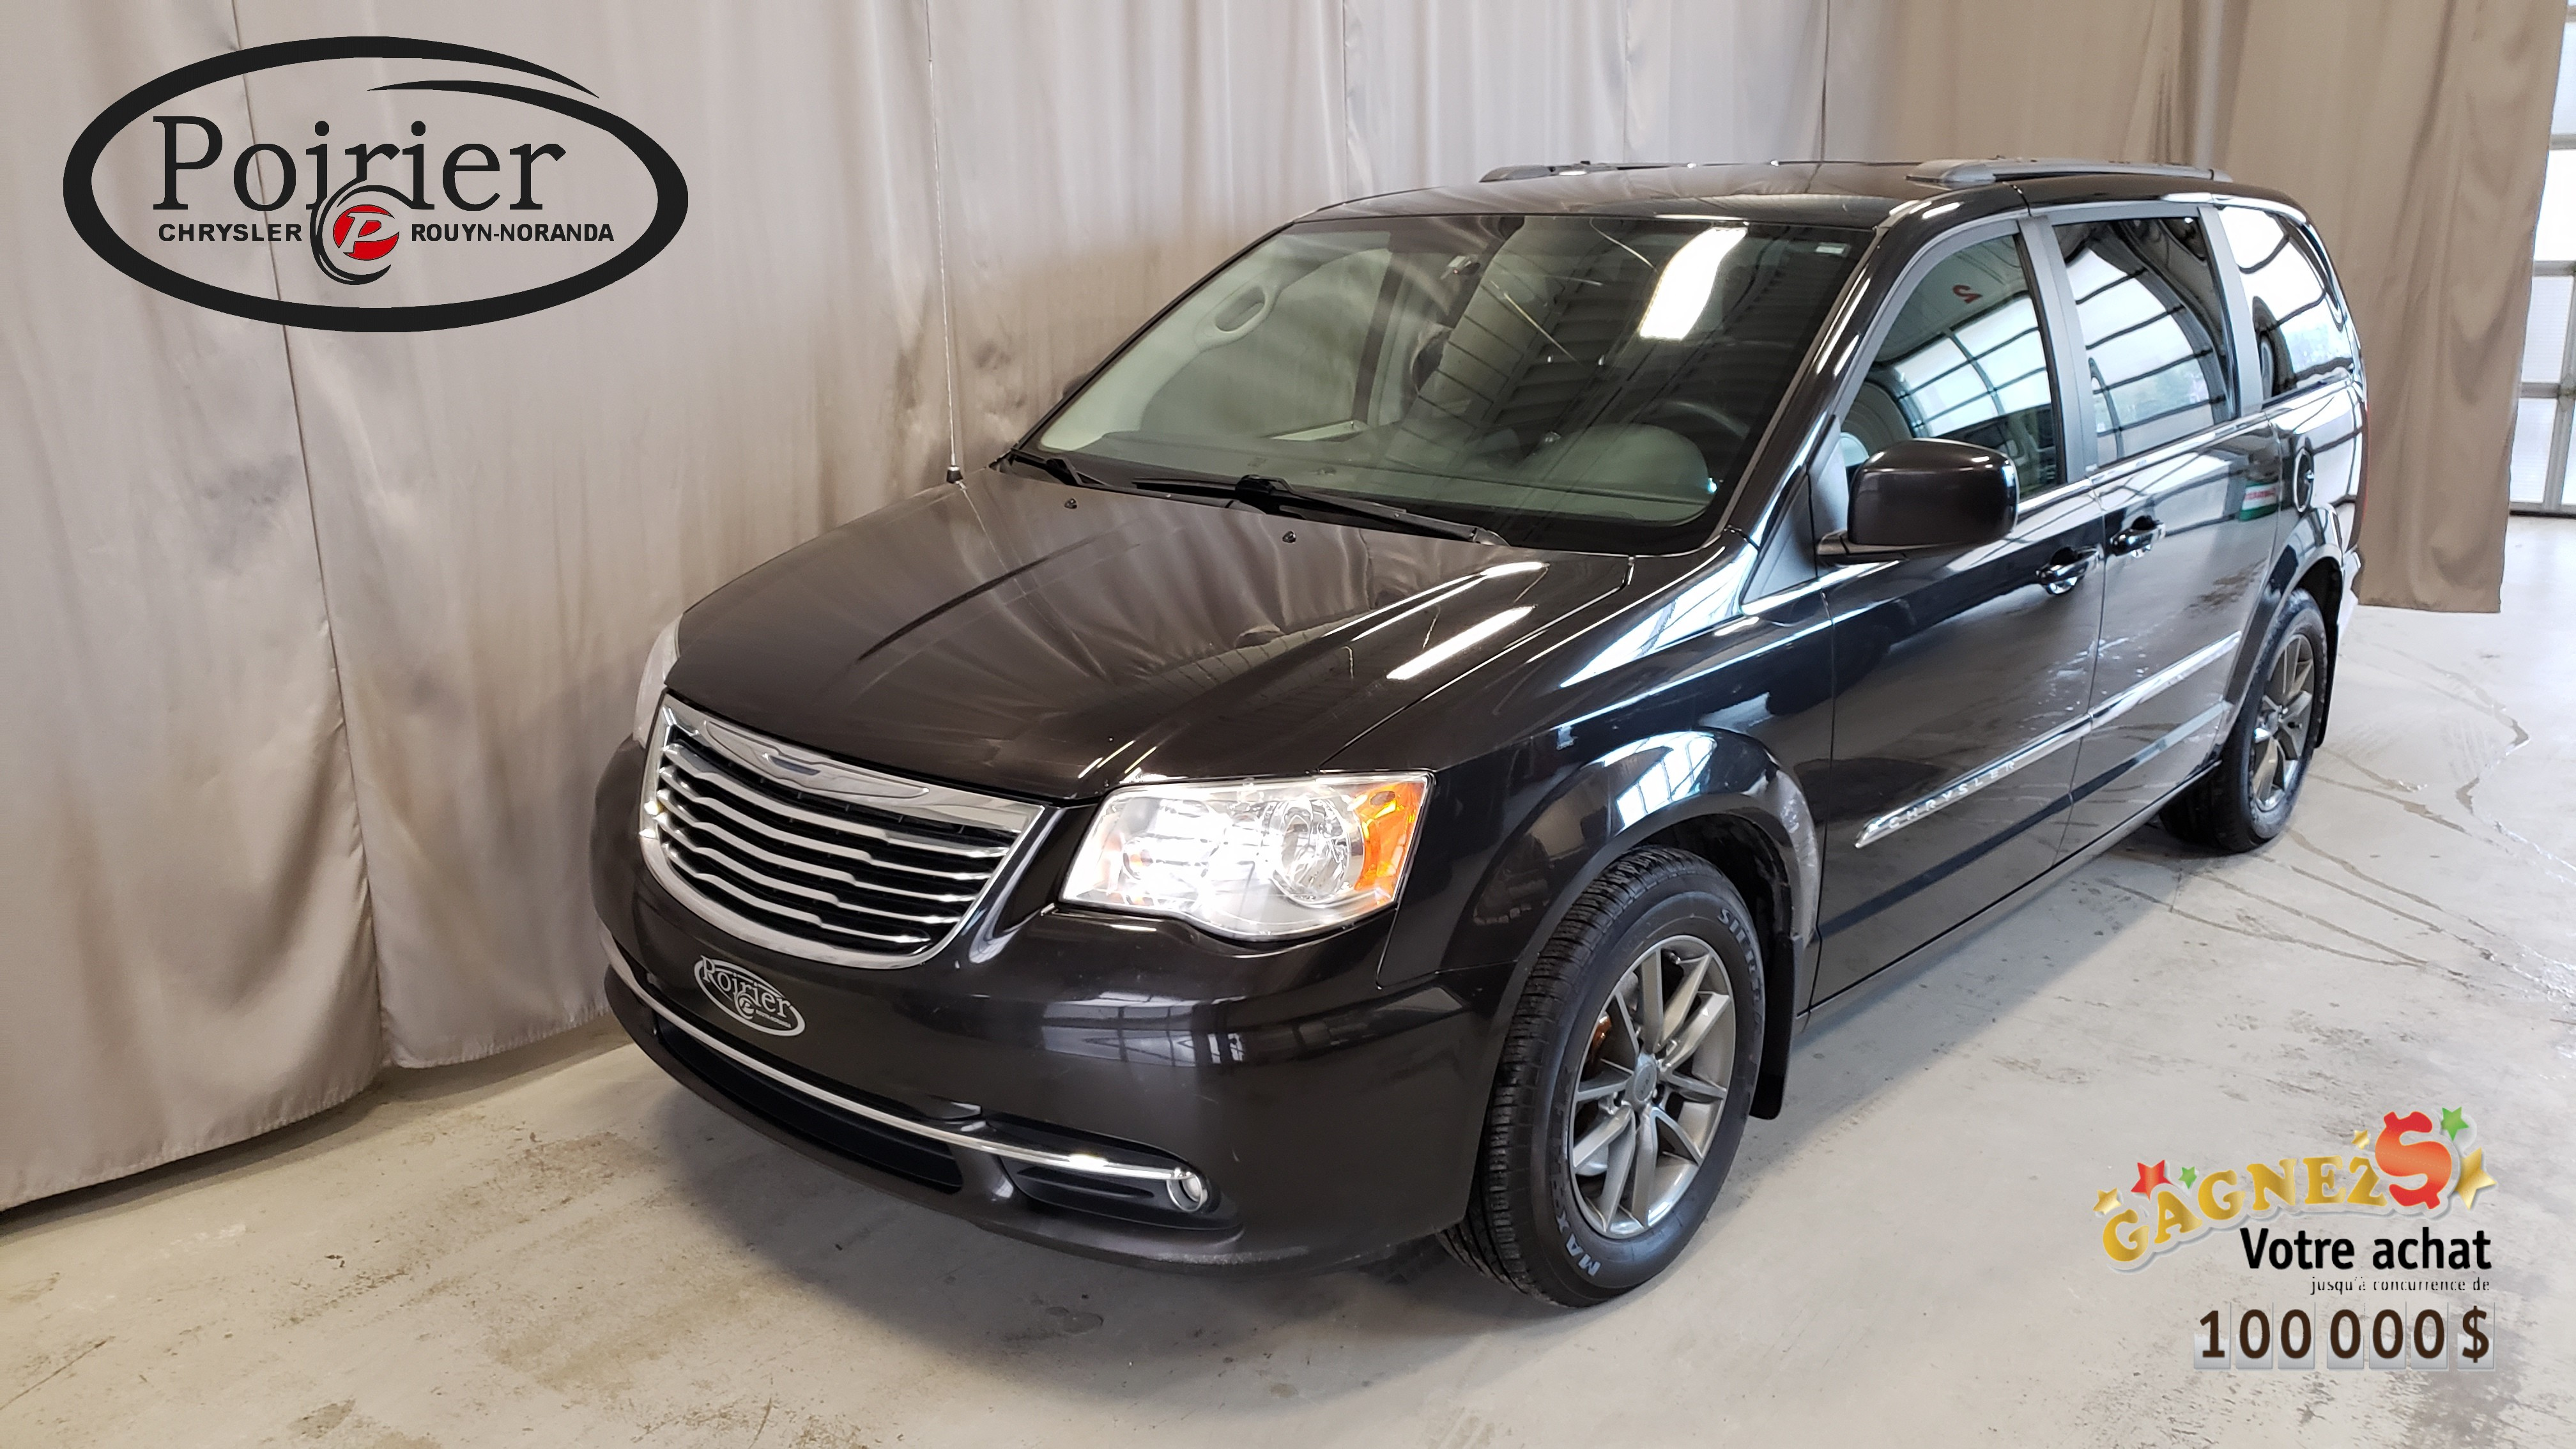 2014 Chrysler Town & Country Touring Vehicule Familiale Mini-Fourgonnette